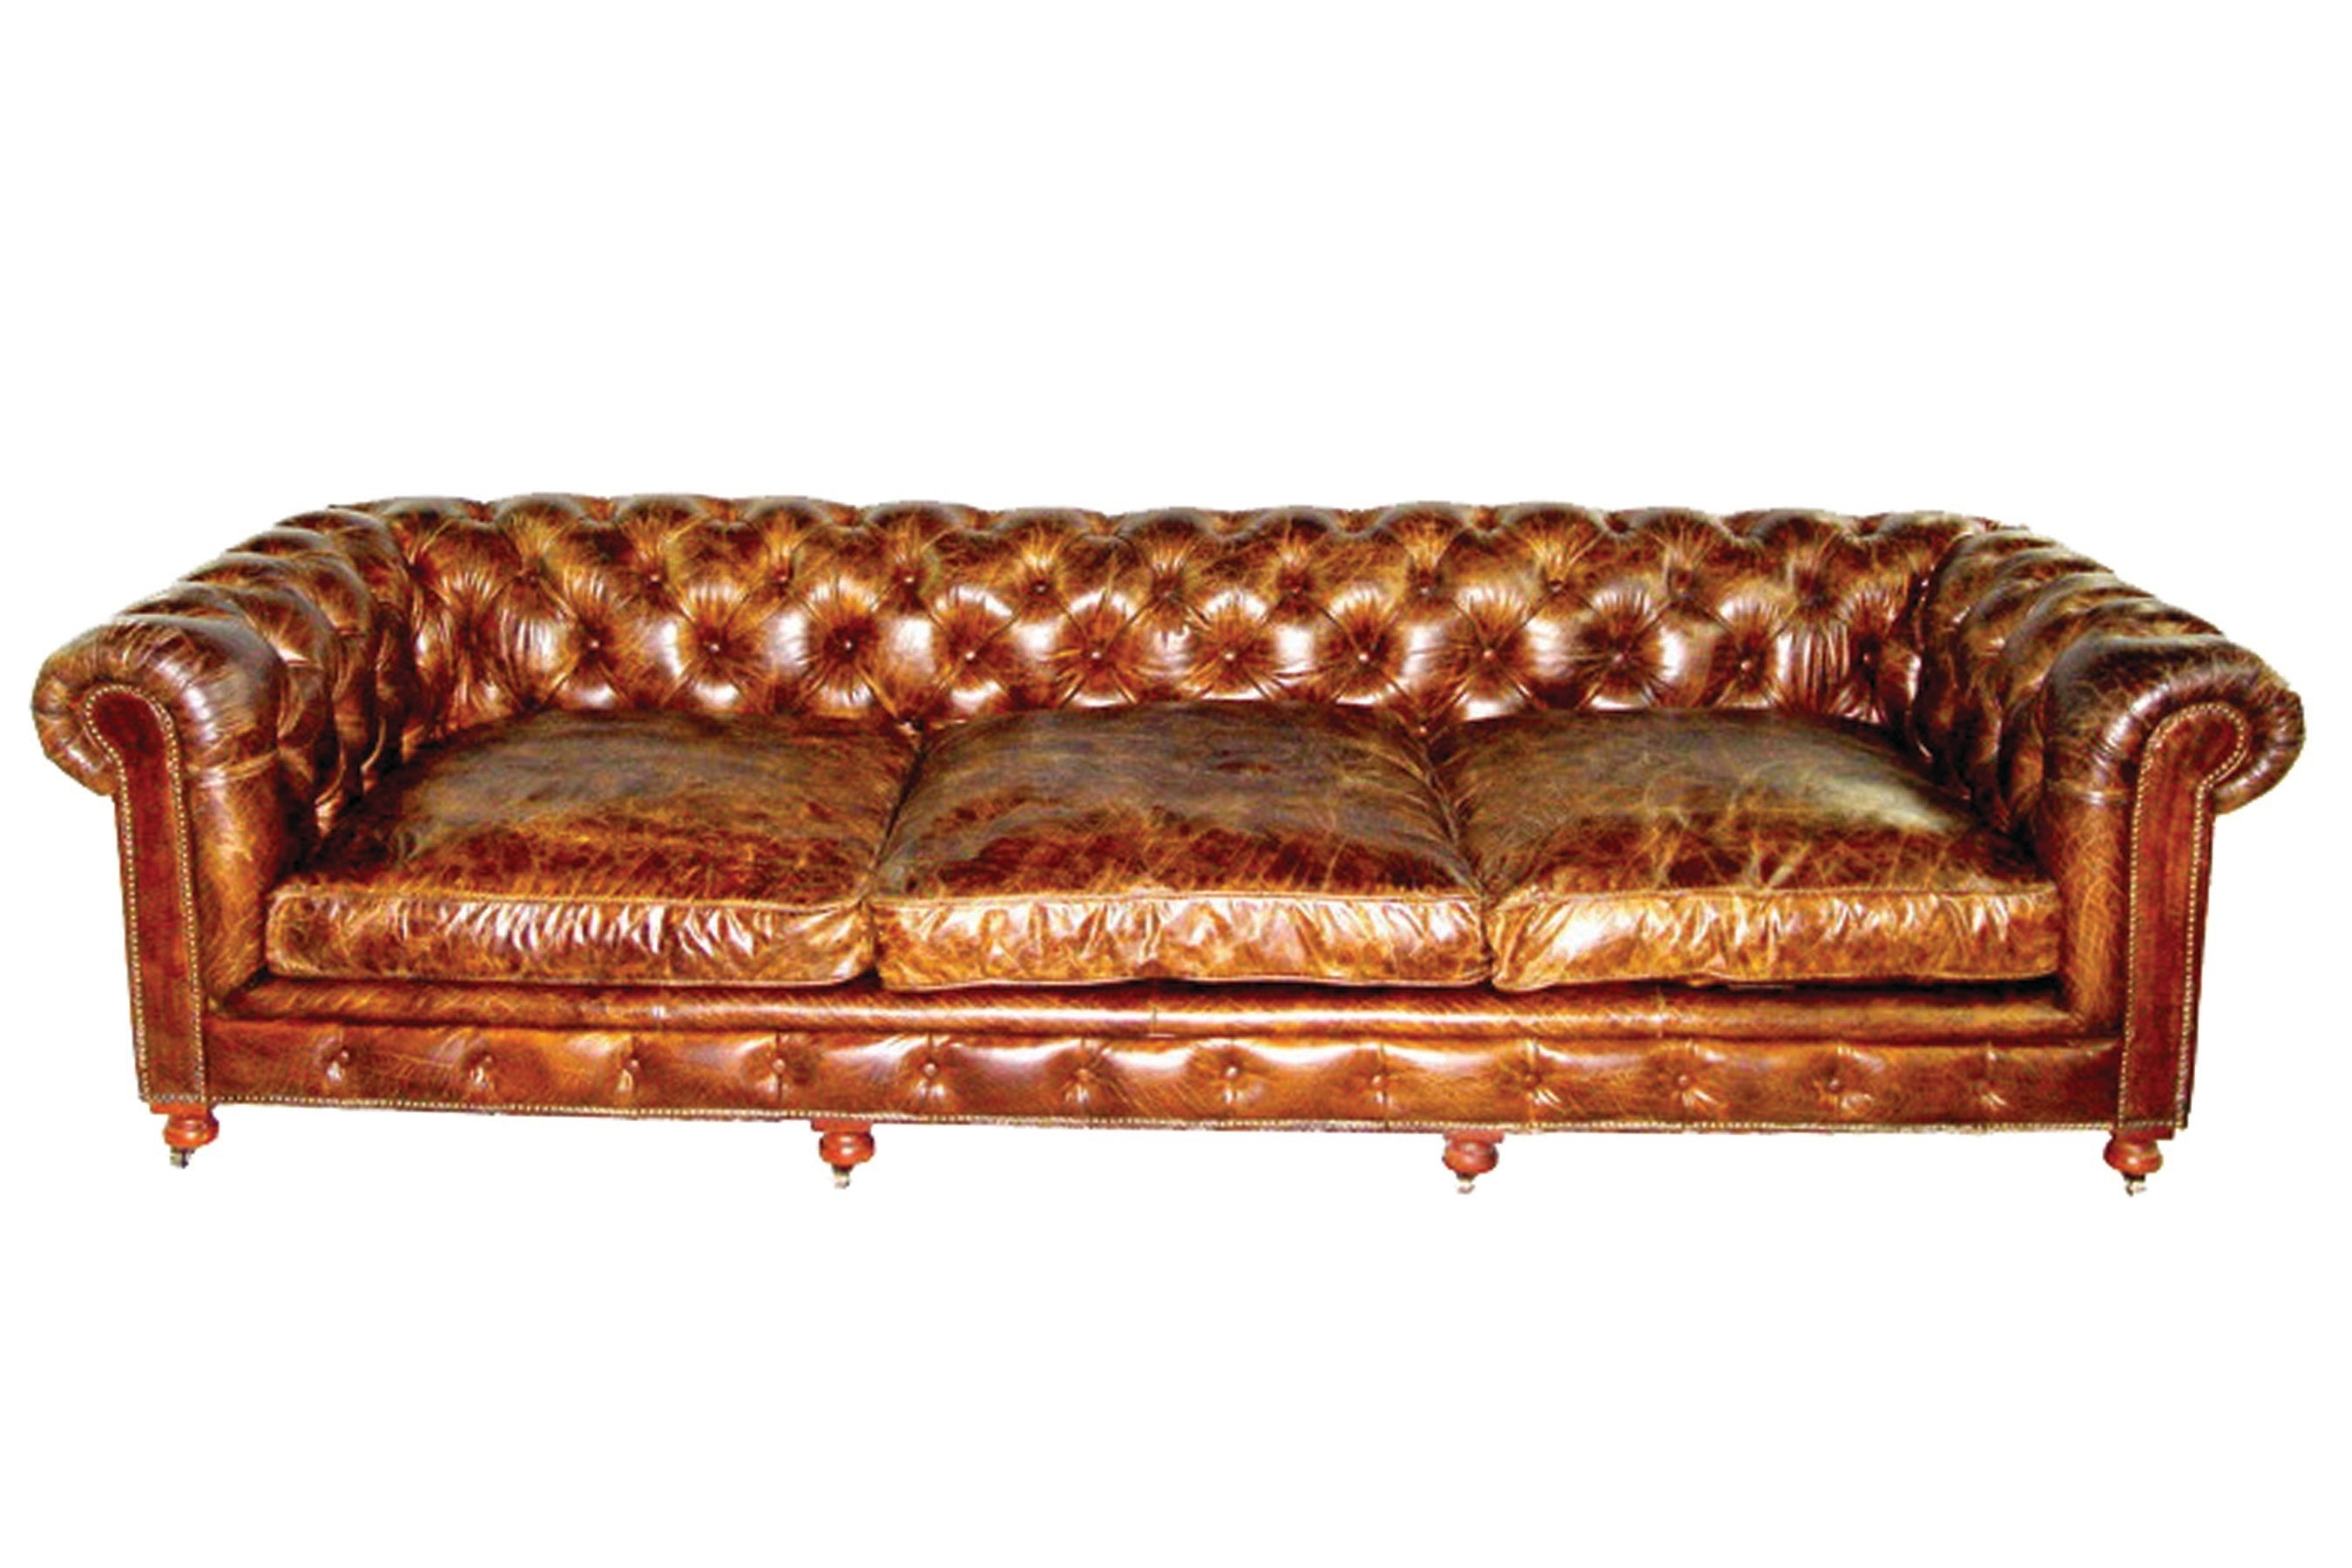 pair of monumental distressed leather chesterfield sofas priced per sofa